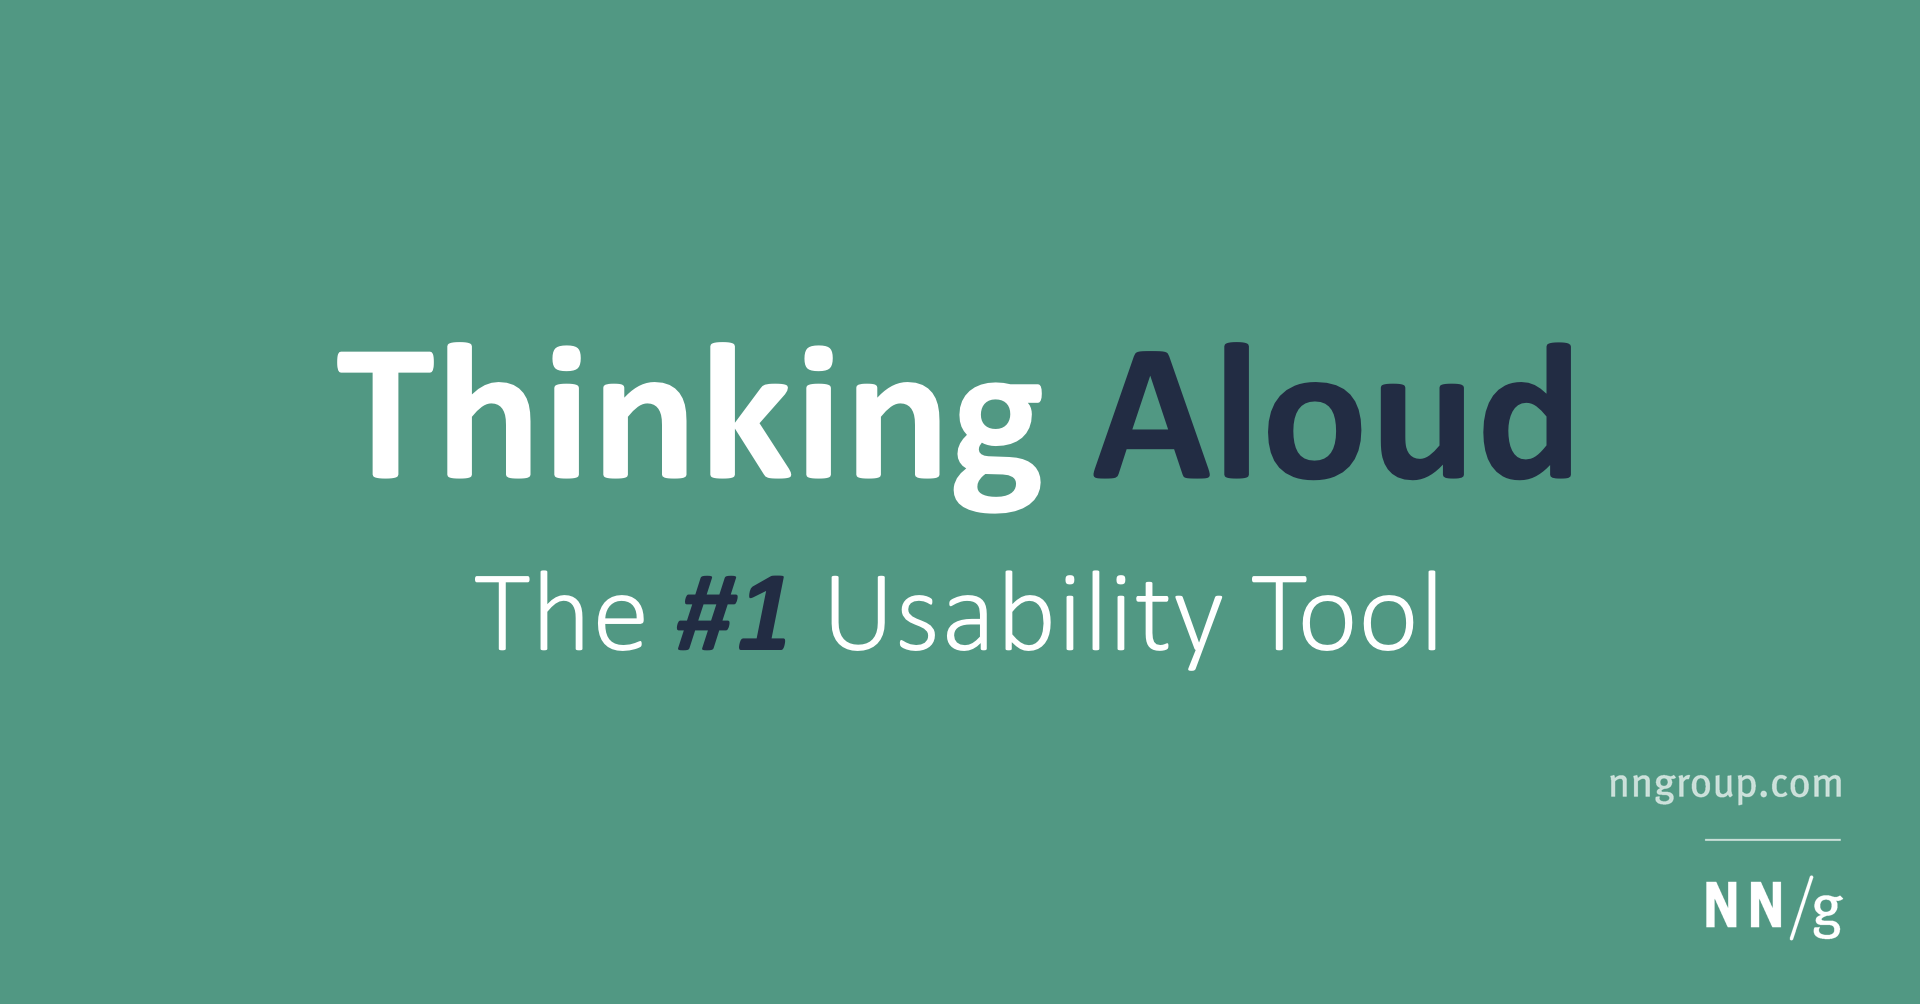 Thinking Aloud: The #1 Usability Tool